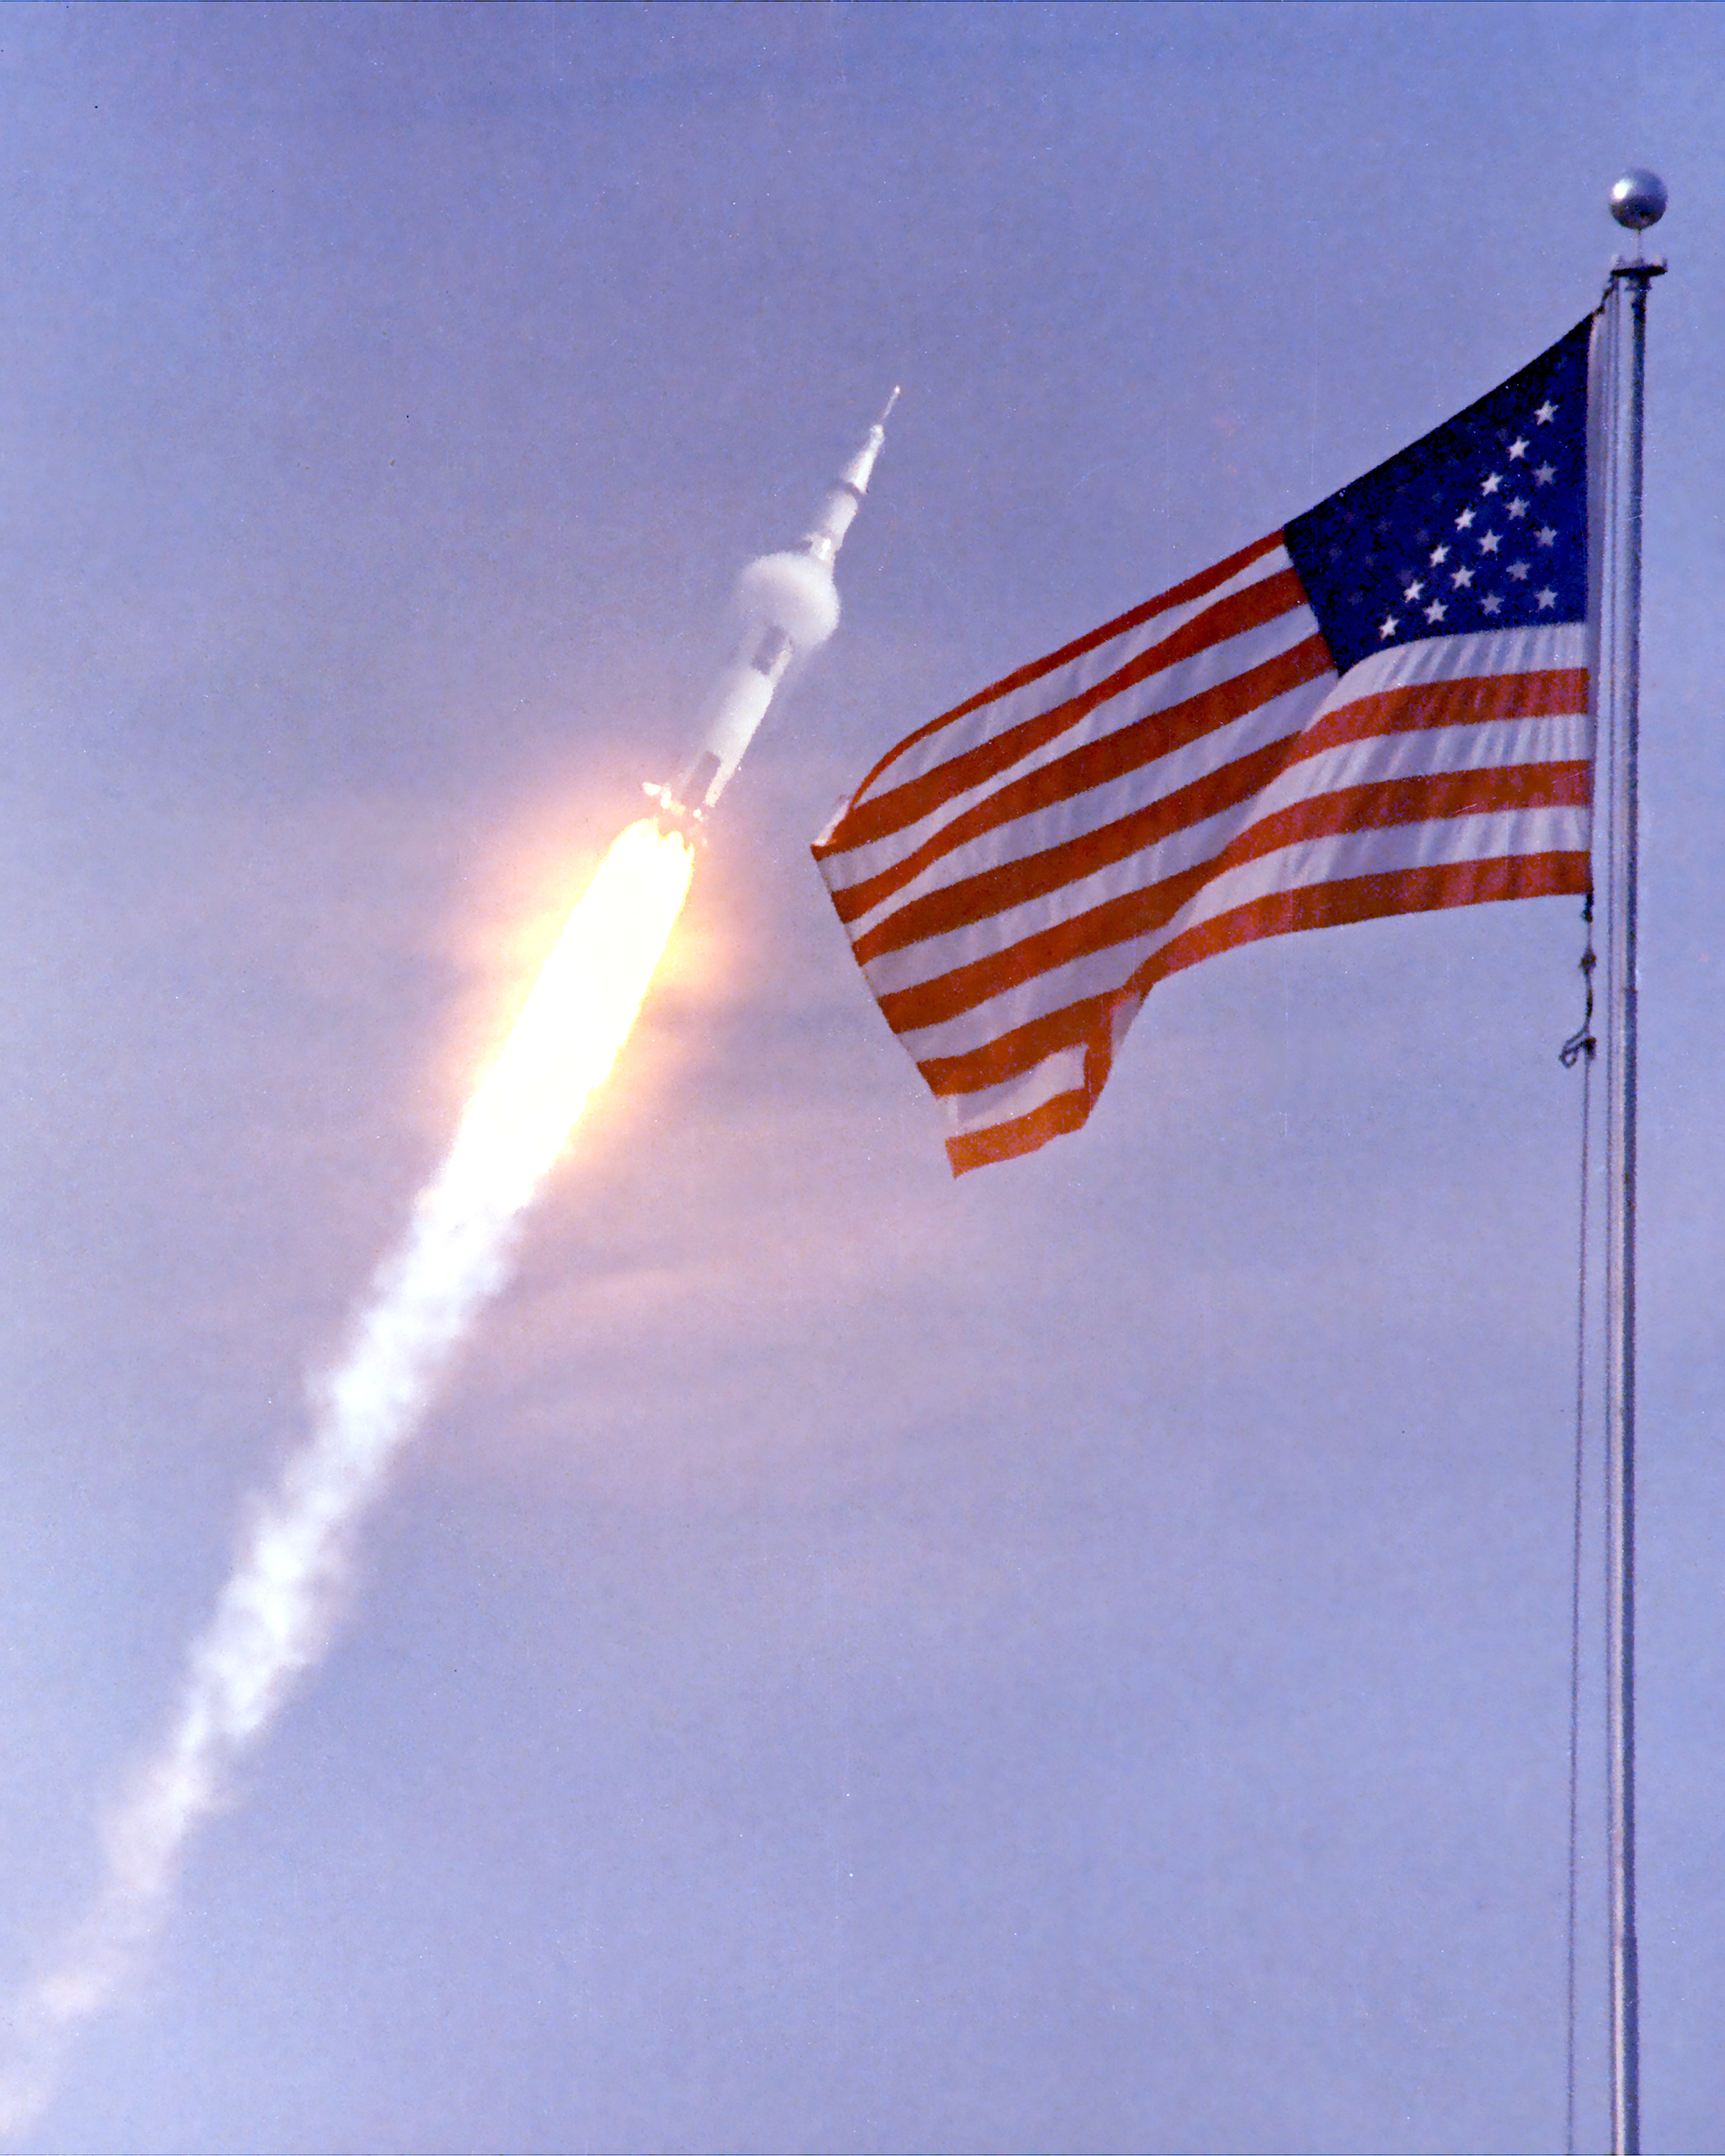 apollo 11 launch - photo #4